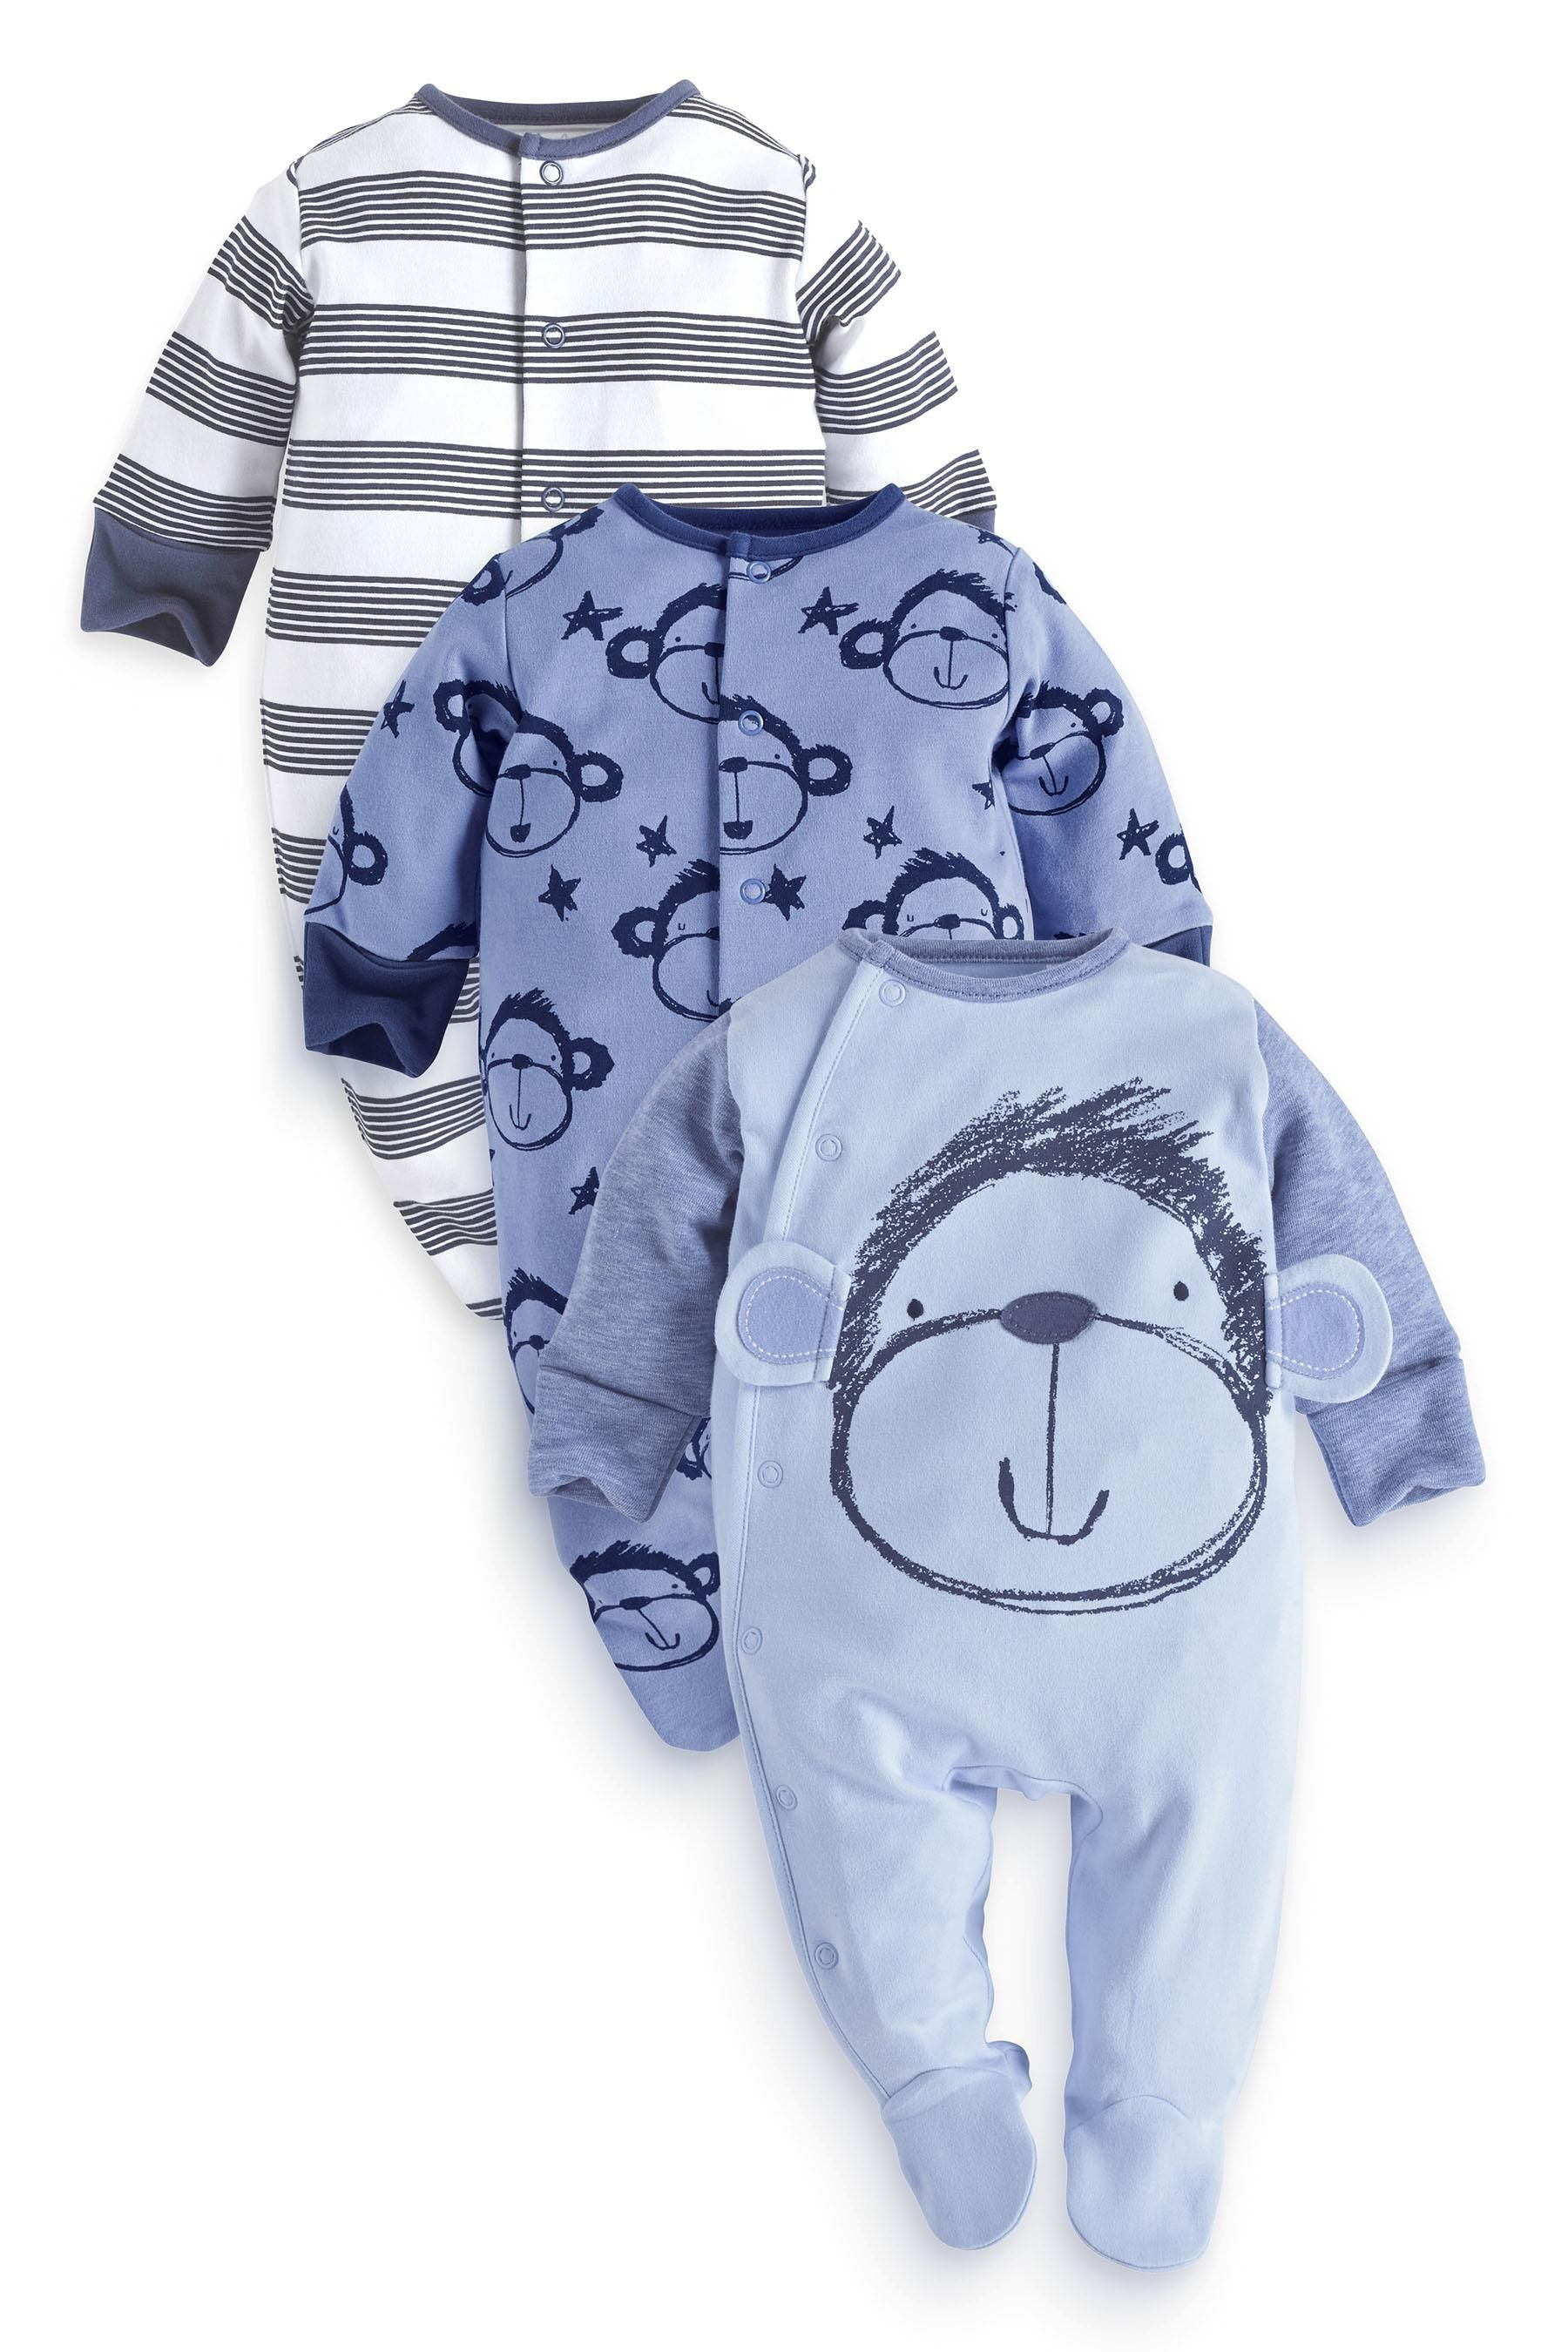 e2ded8da8 Buy Three Pack Blue Monkey Face Sleepsuits (0mths-2yrs) from the ...